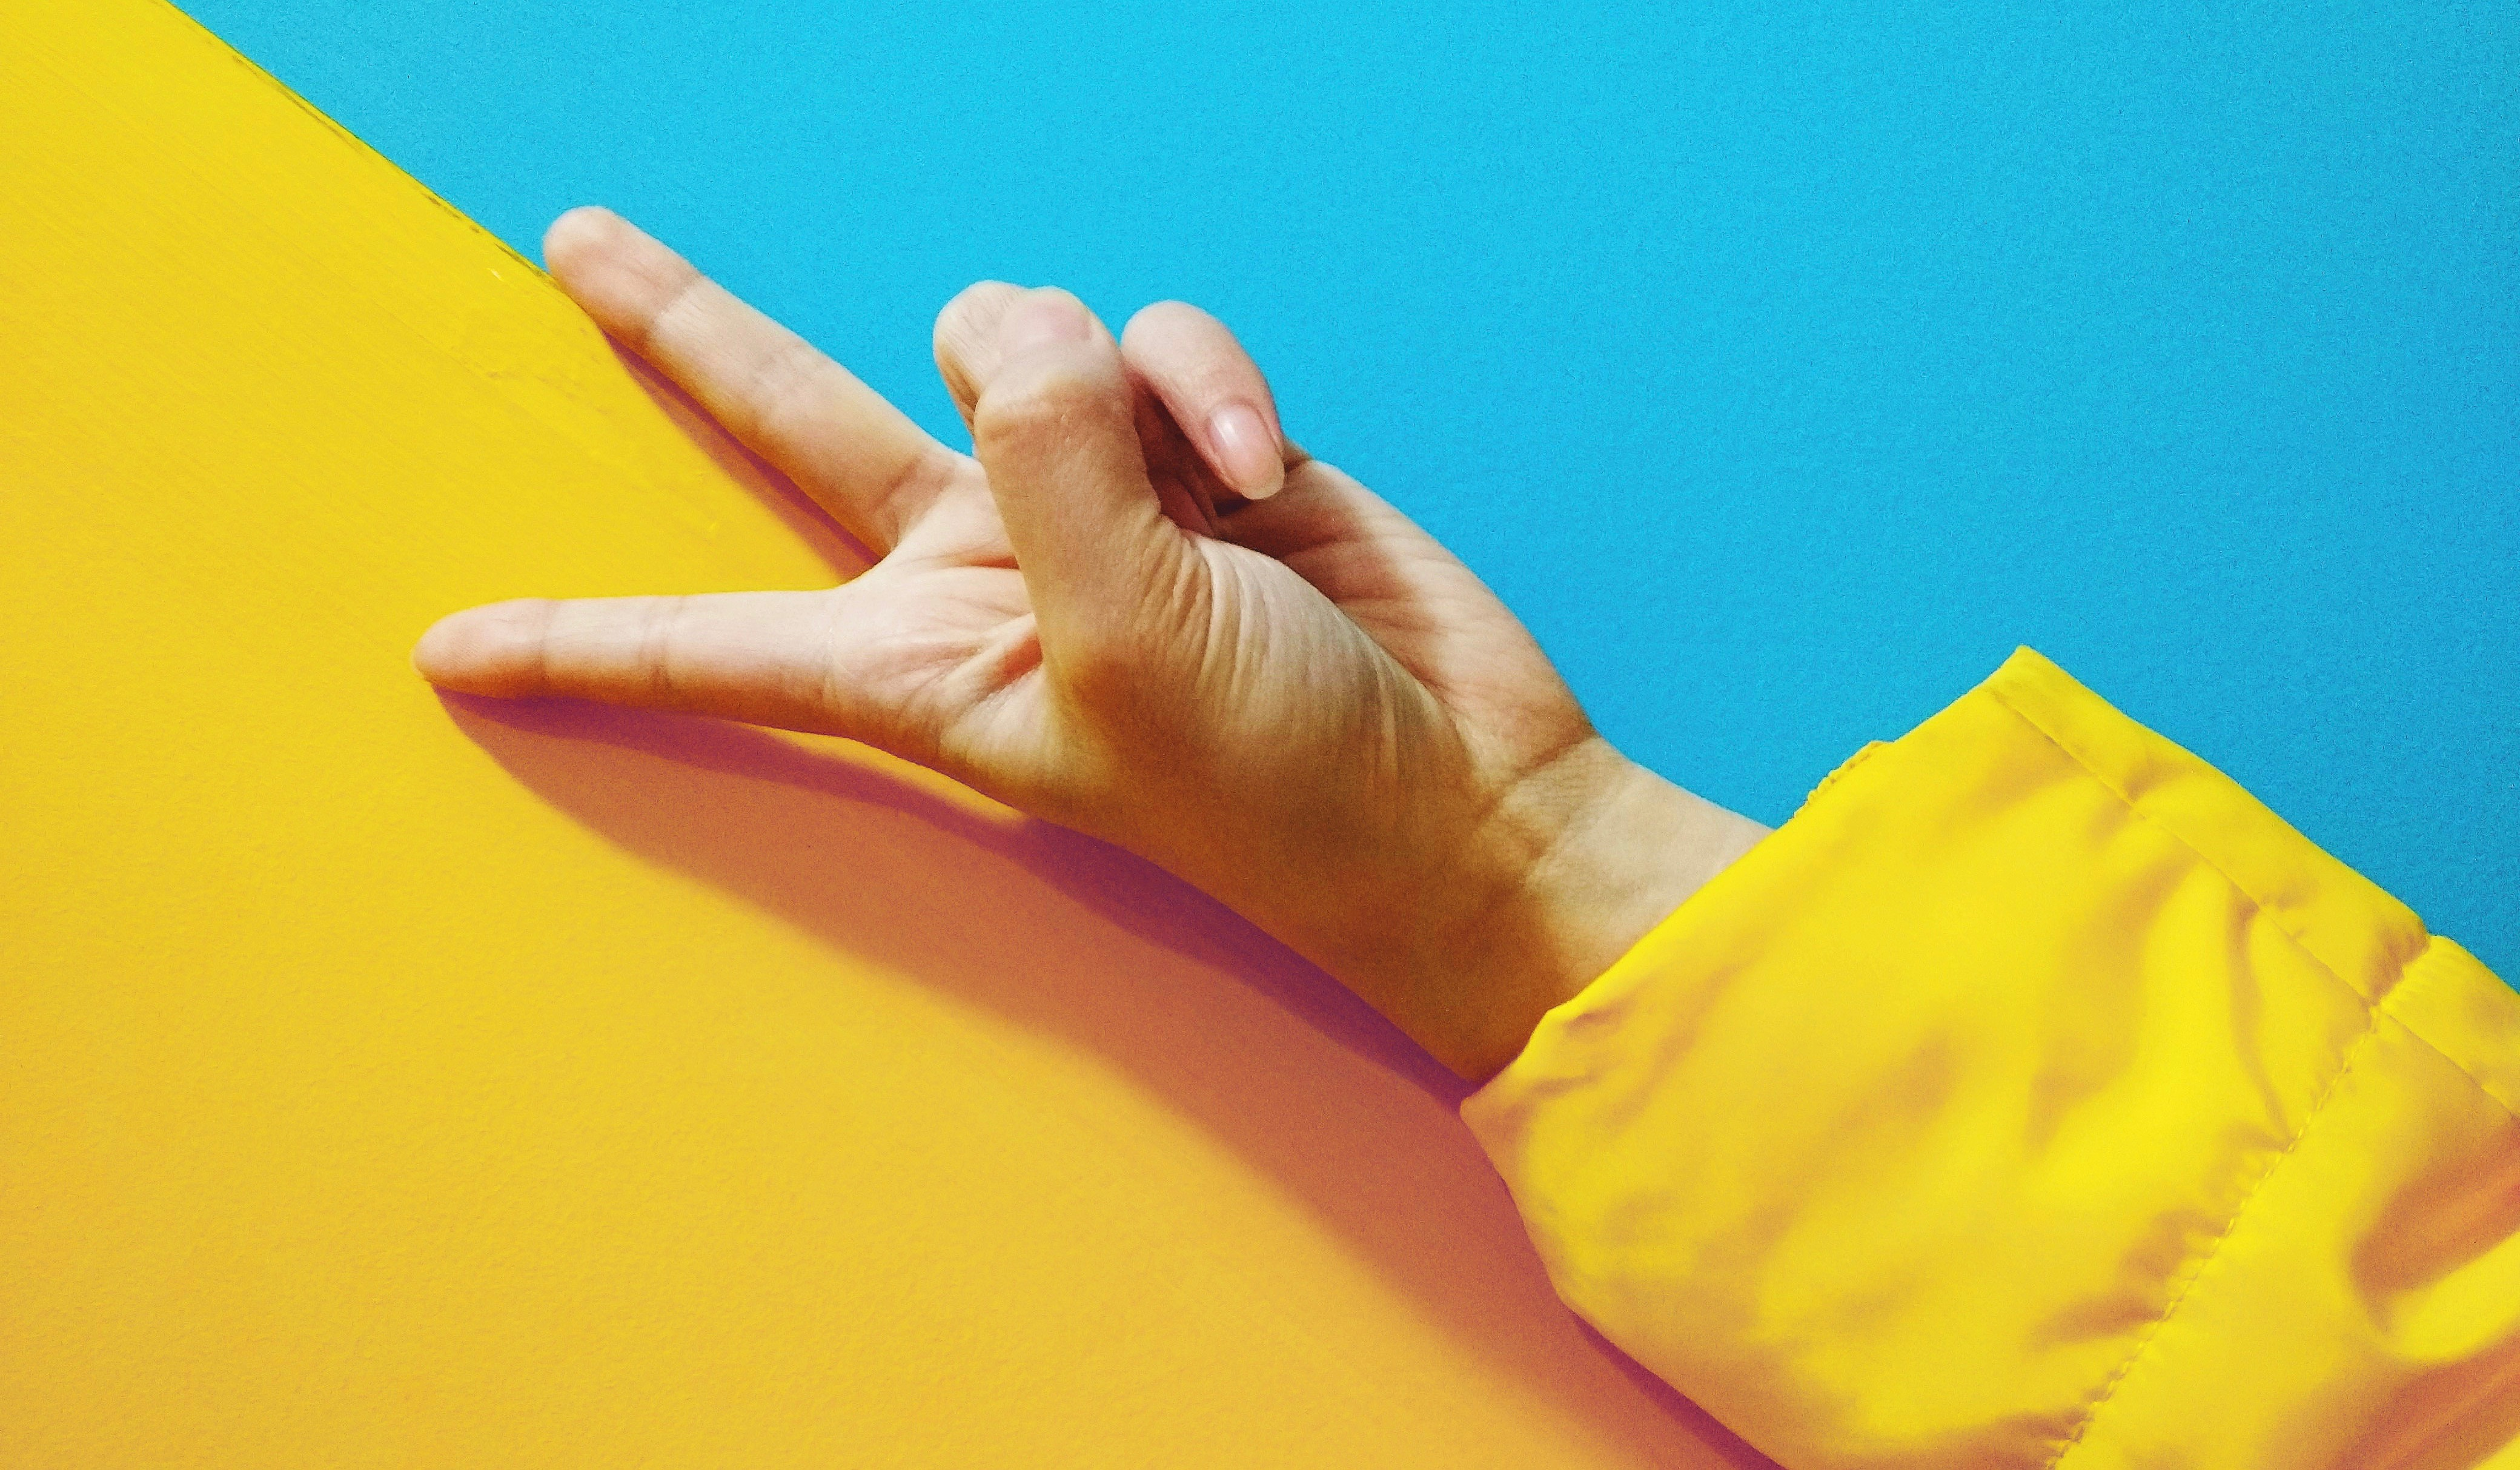 hand on blue and yellow background